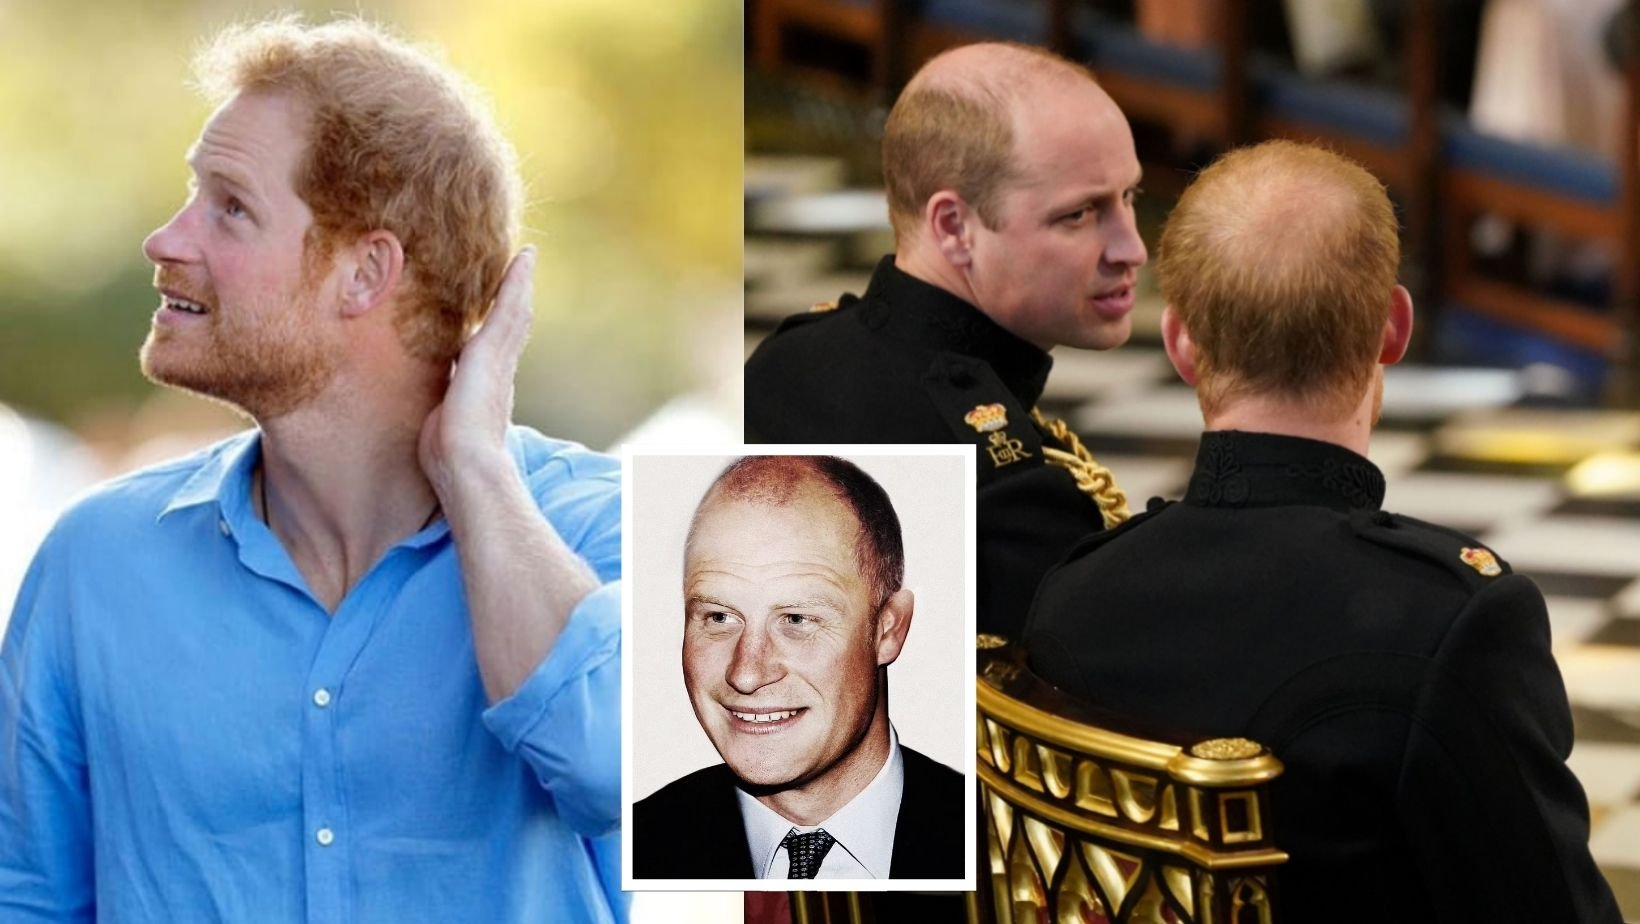 cover 12.jpg?resize=412,275 - Prince Harry's Hair Loss Is Getting Worse Since He Moved To The US, Cosmetic Doctor Claims He Will Be Completely Bald At 50